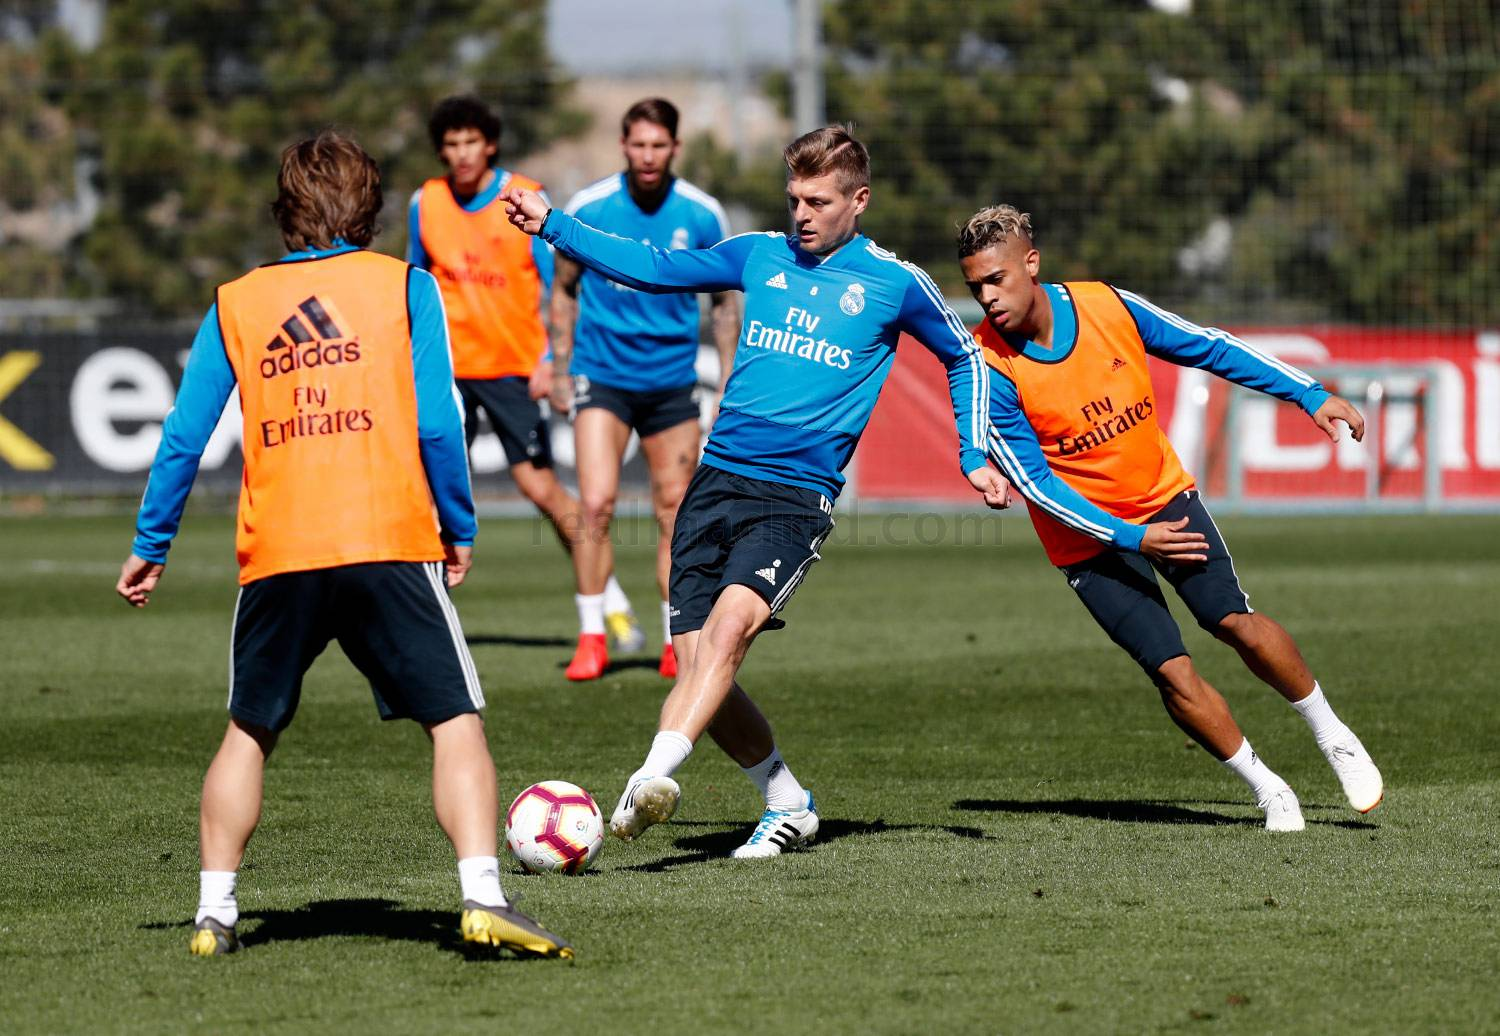 Real Madrid - Entrenamiento del Real Madrid - 07-03-2019